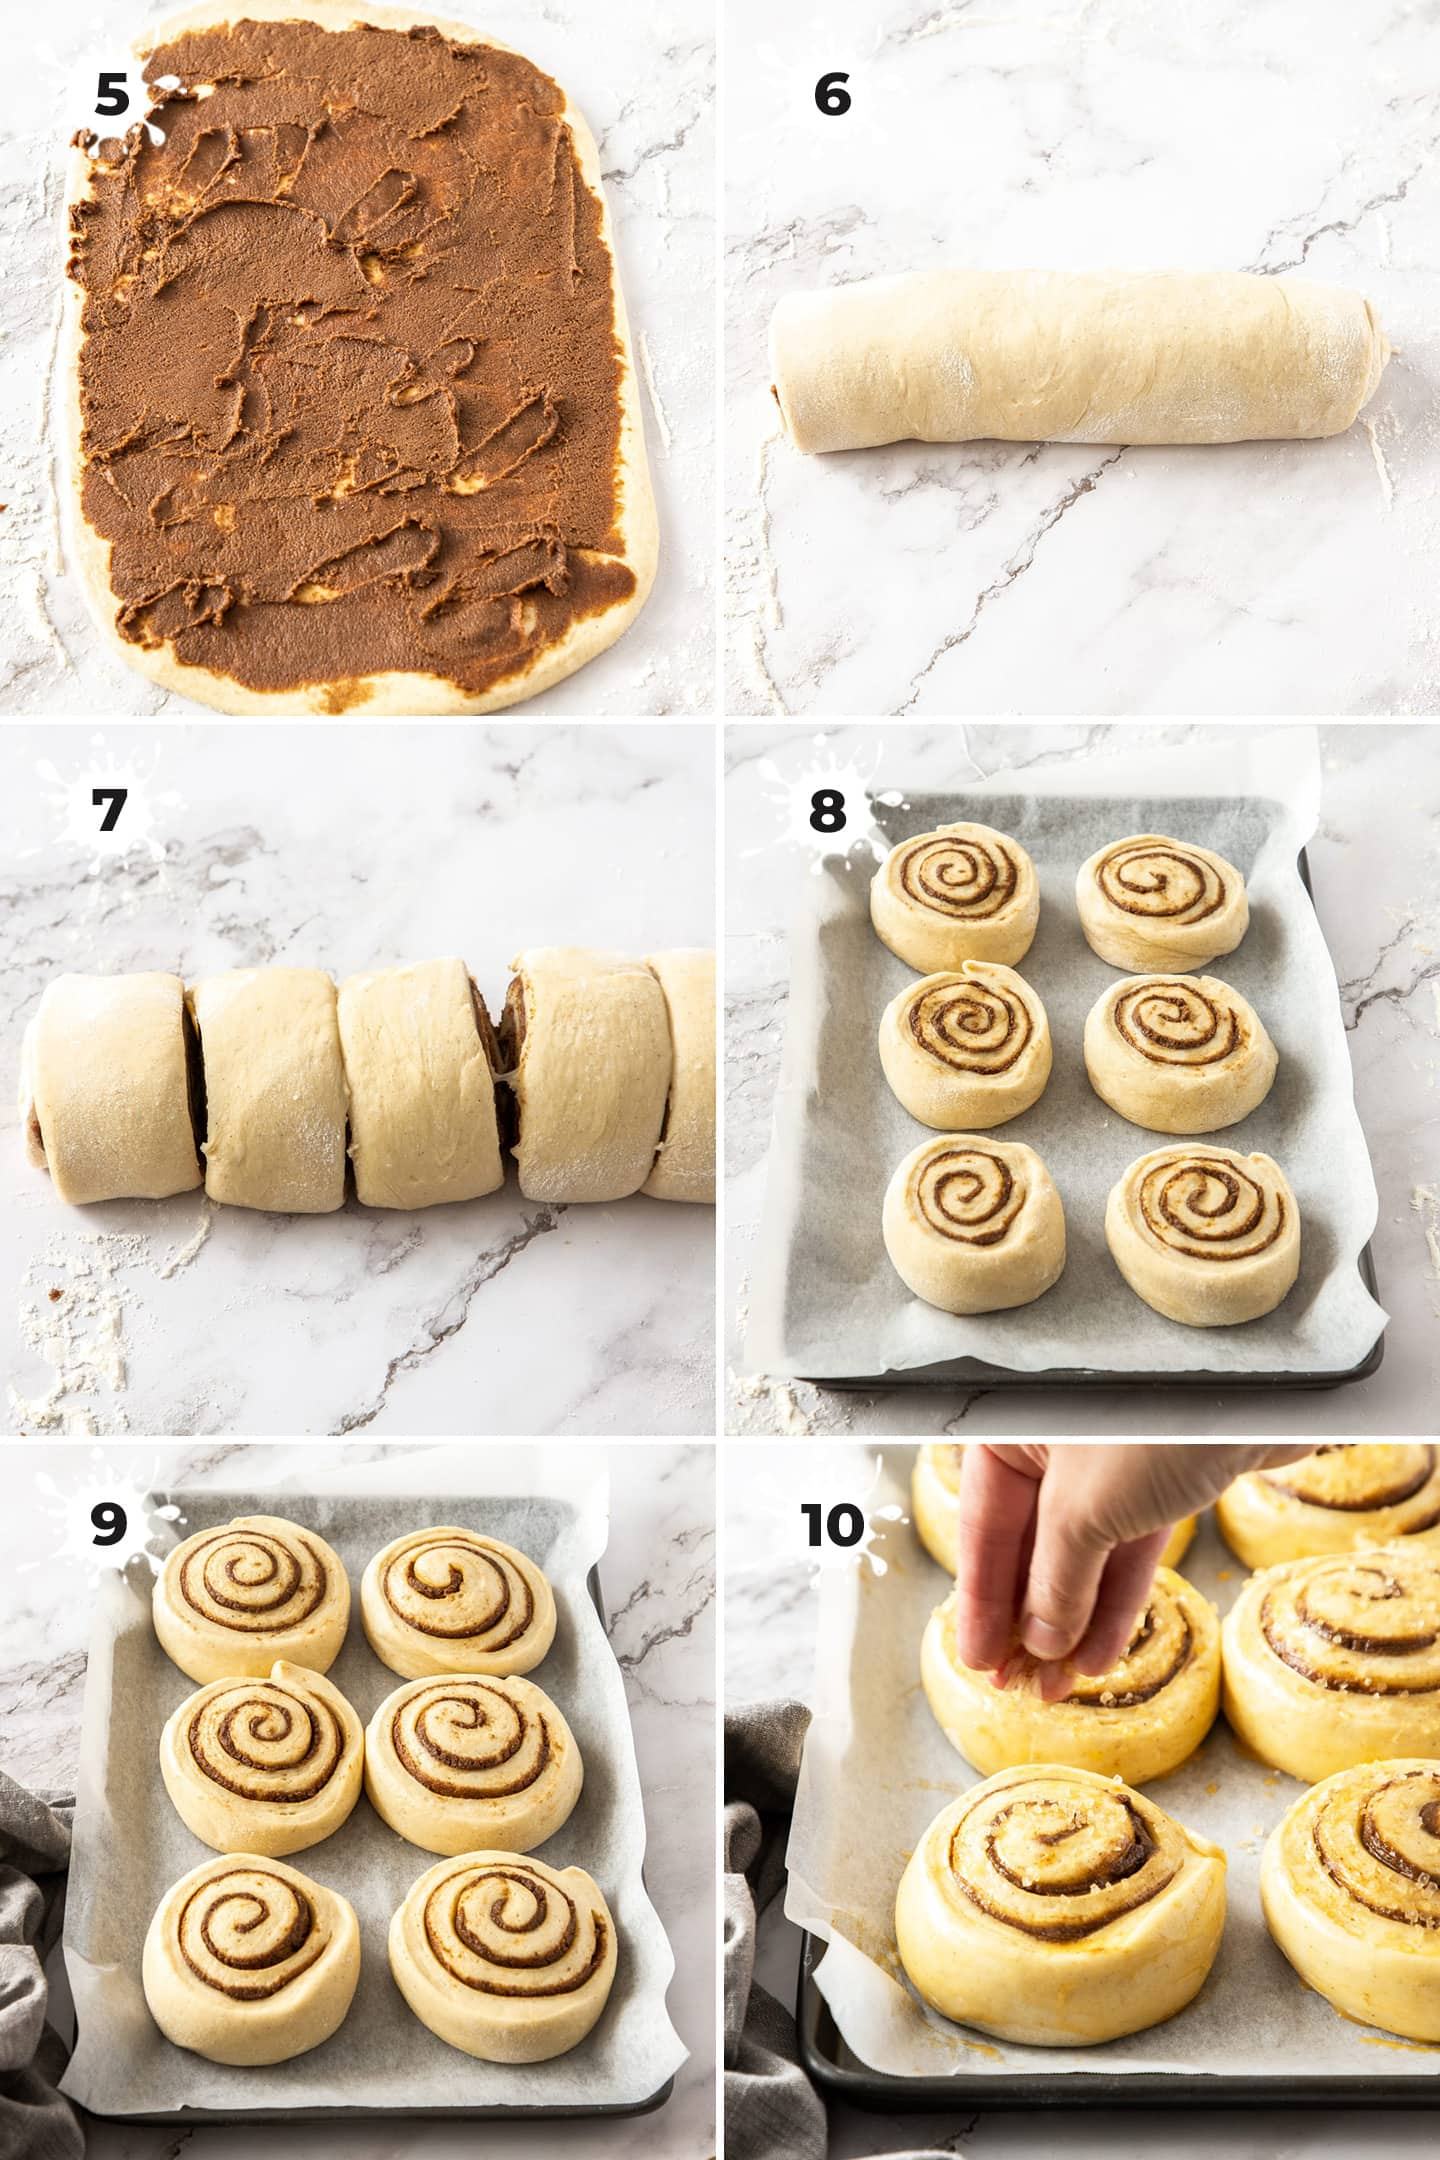 Step showing how to roll dough for cinnamon buns.